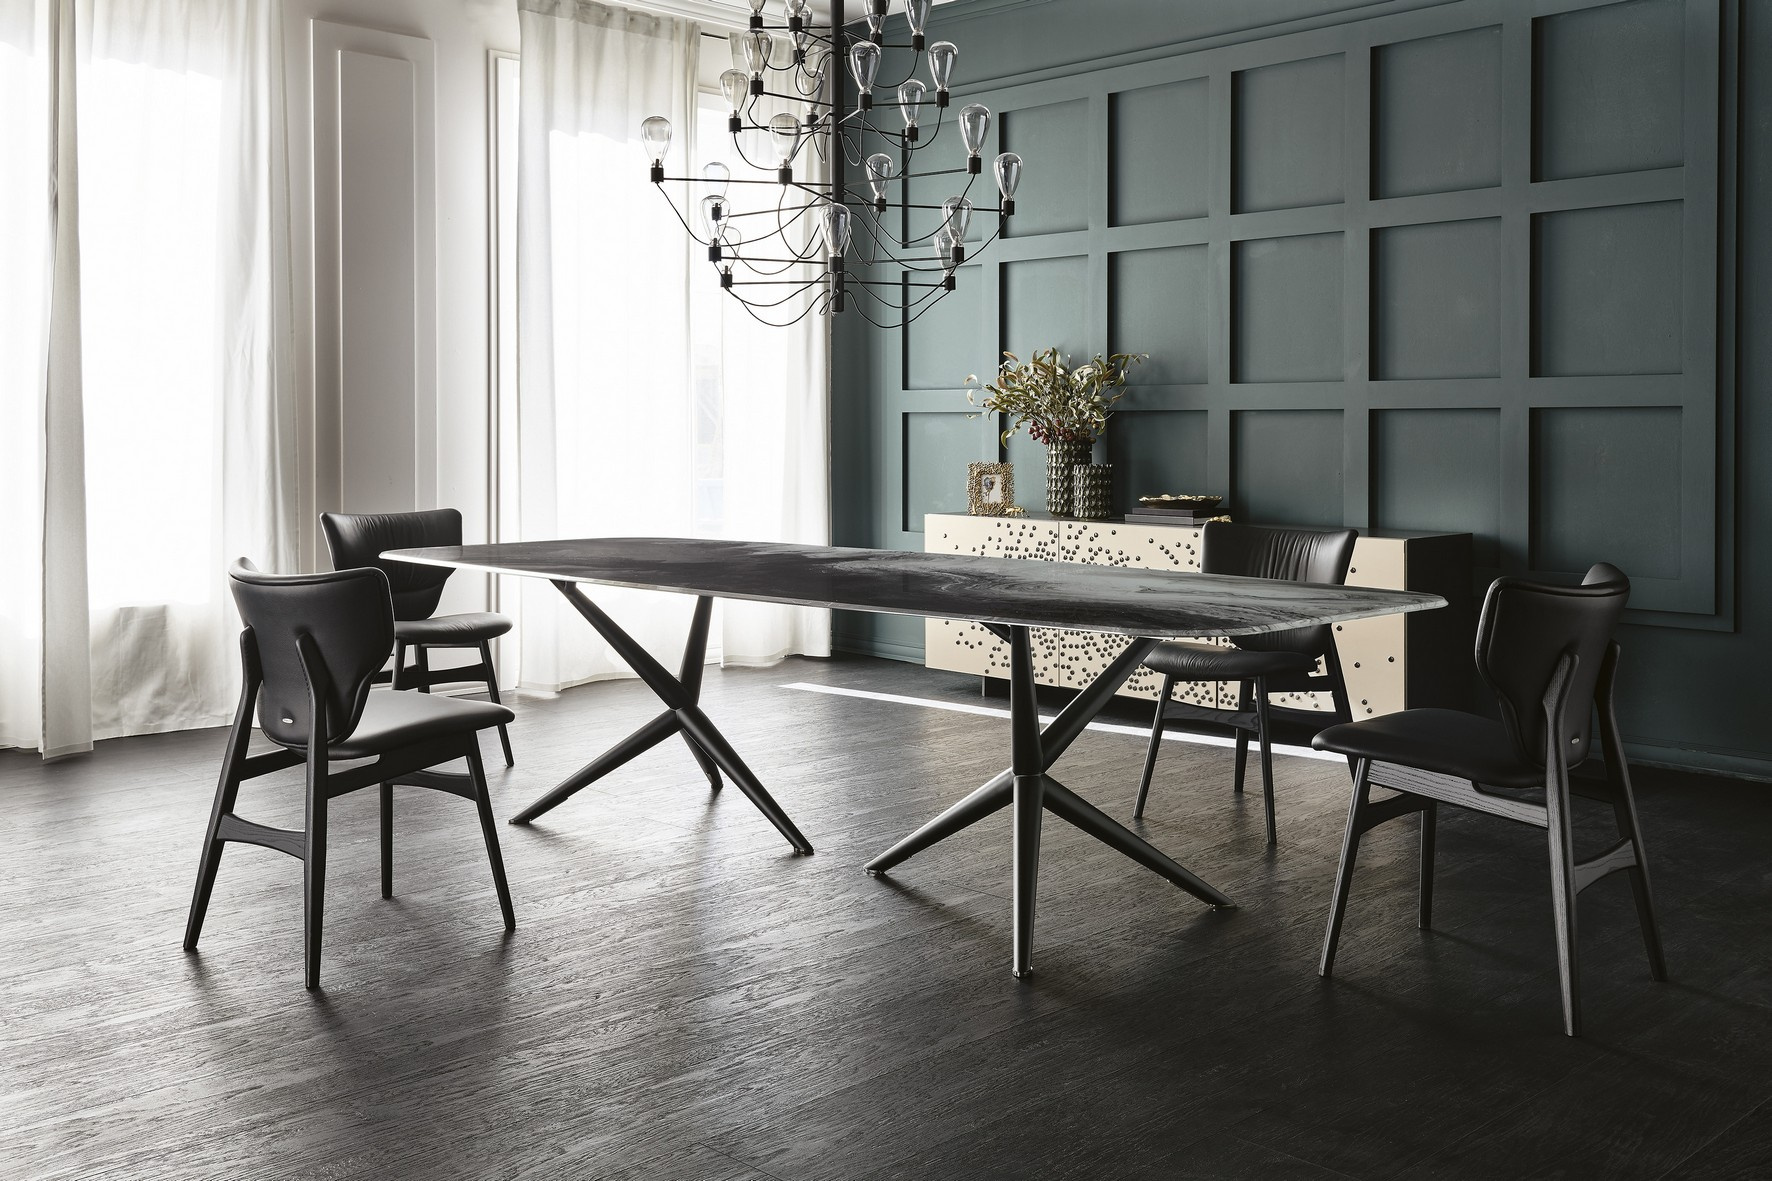 Atlantis Crystalart Dining Table